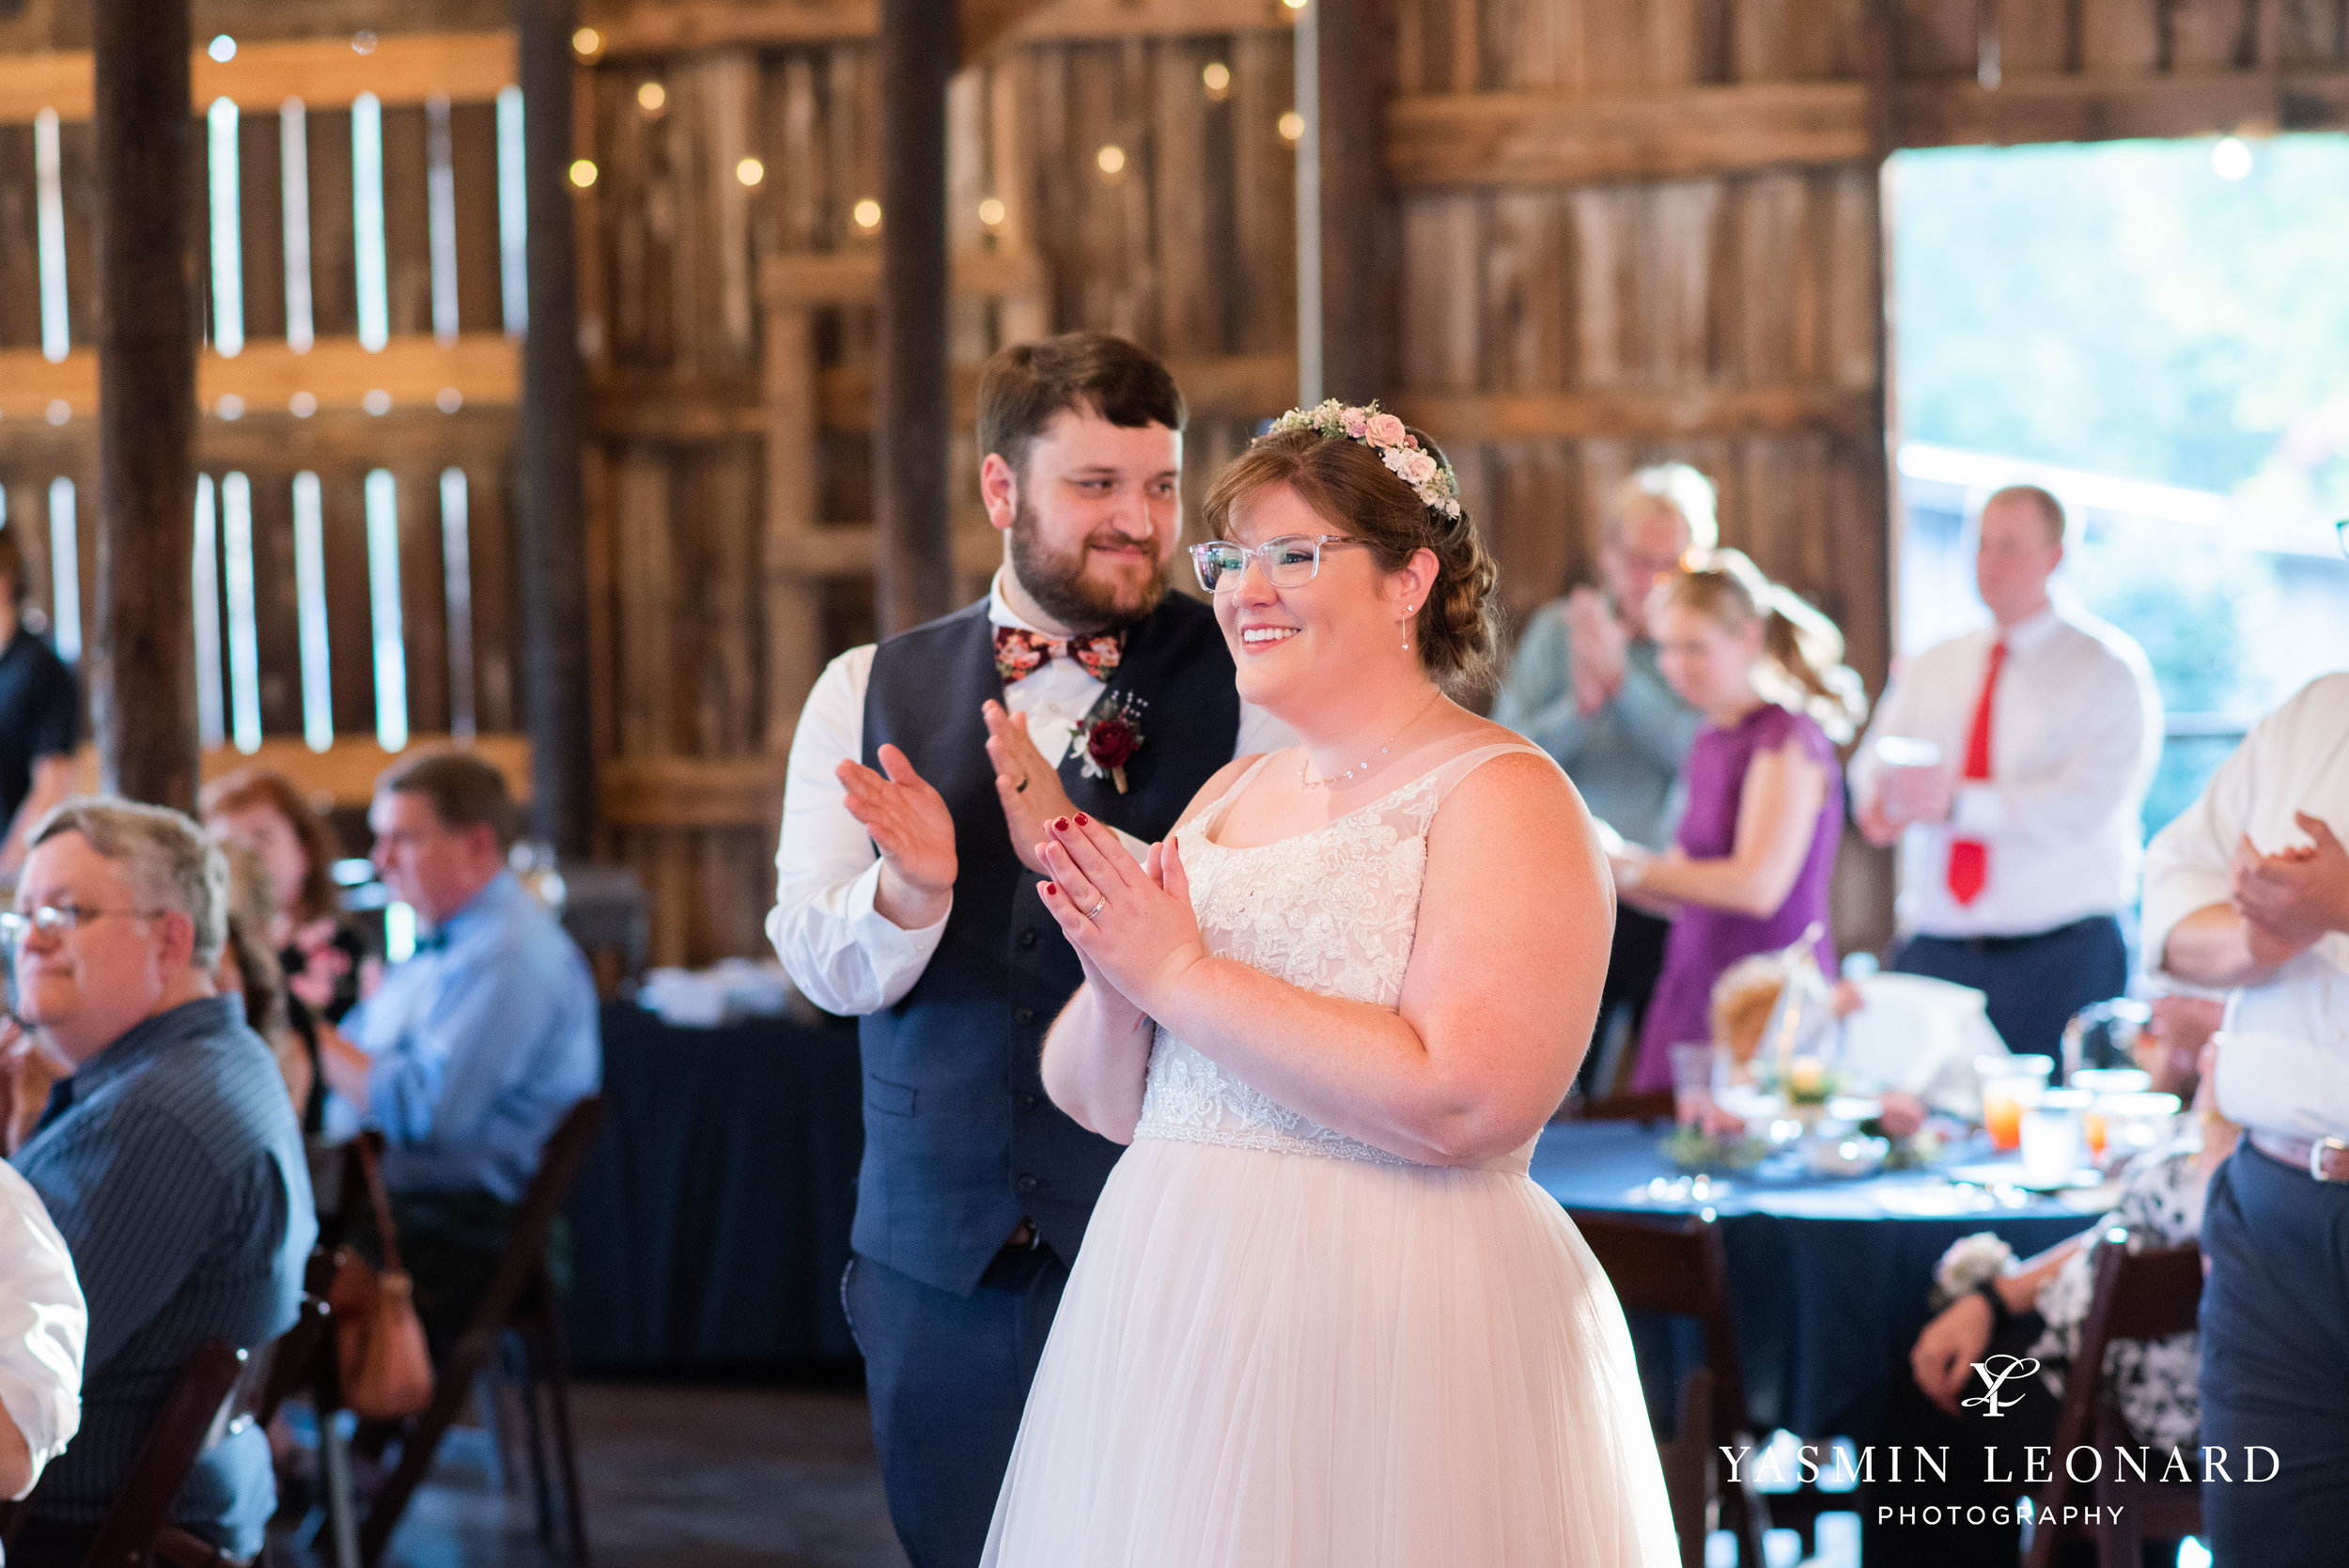 Hannah and David - l'abri at Linwood - NC Barn Weddings - Guys and Girls on Bride's Side - How to incorporate guys with bridesmaids - navy fall wedding - high point photographer - nc wedding venues - triad weddings-42.jpg